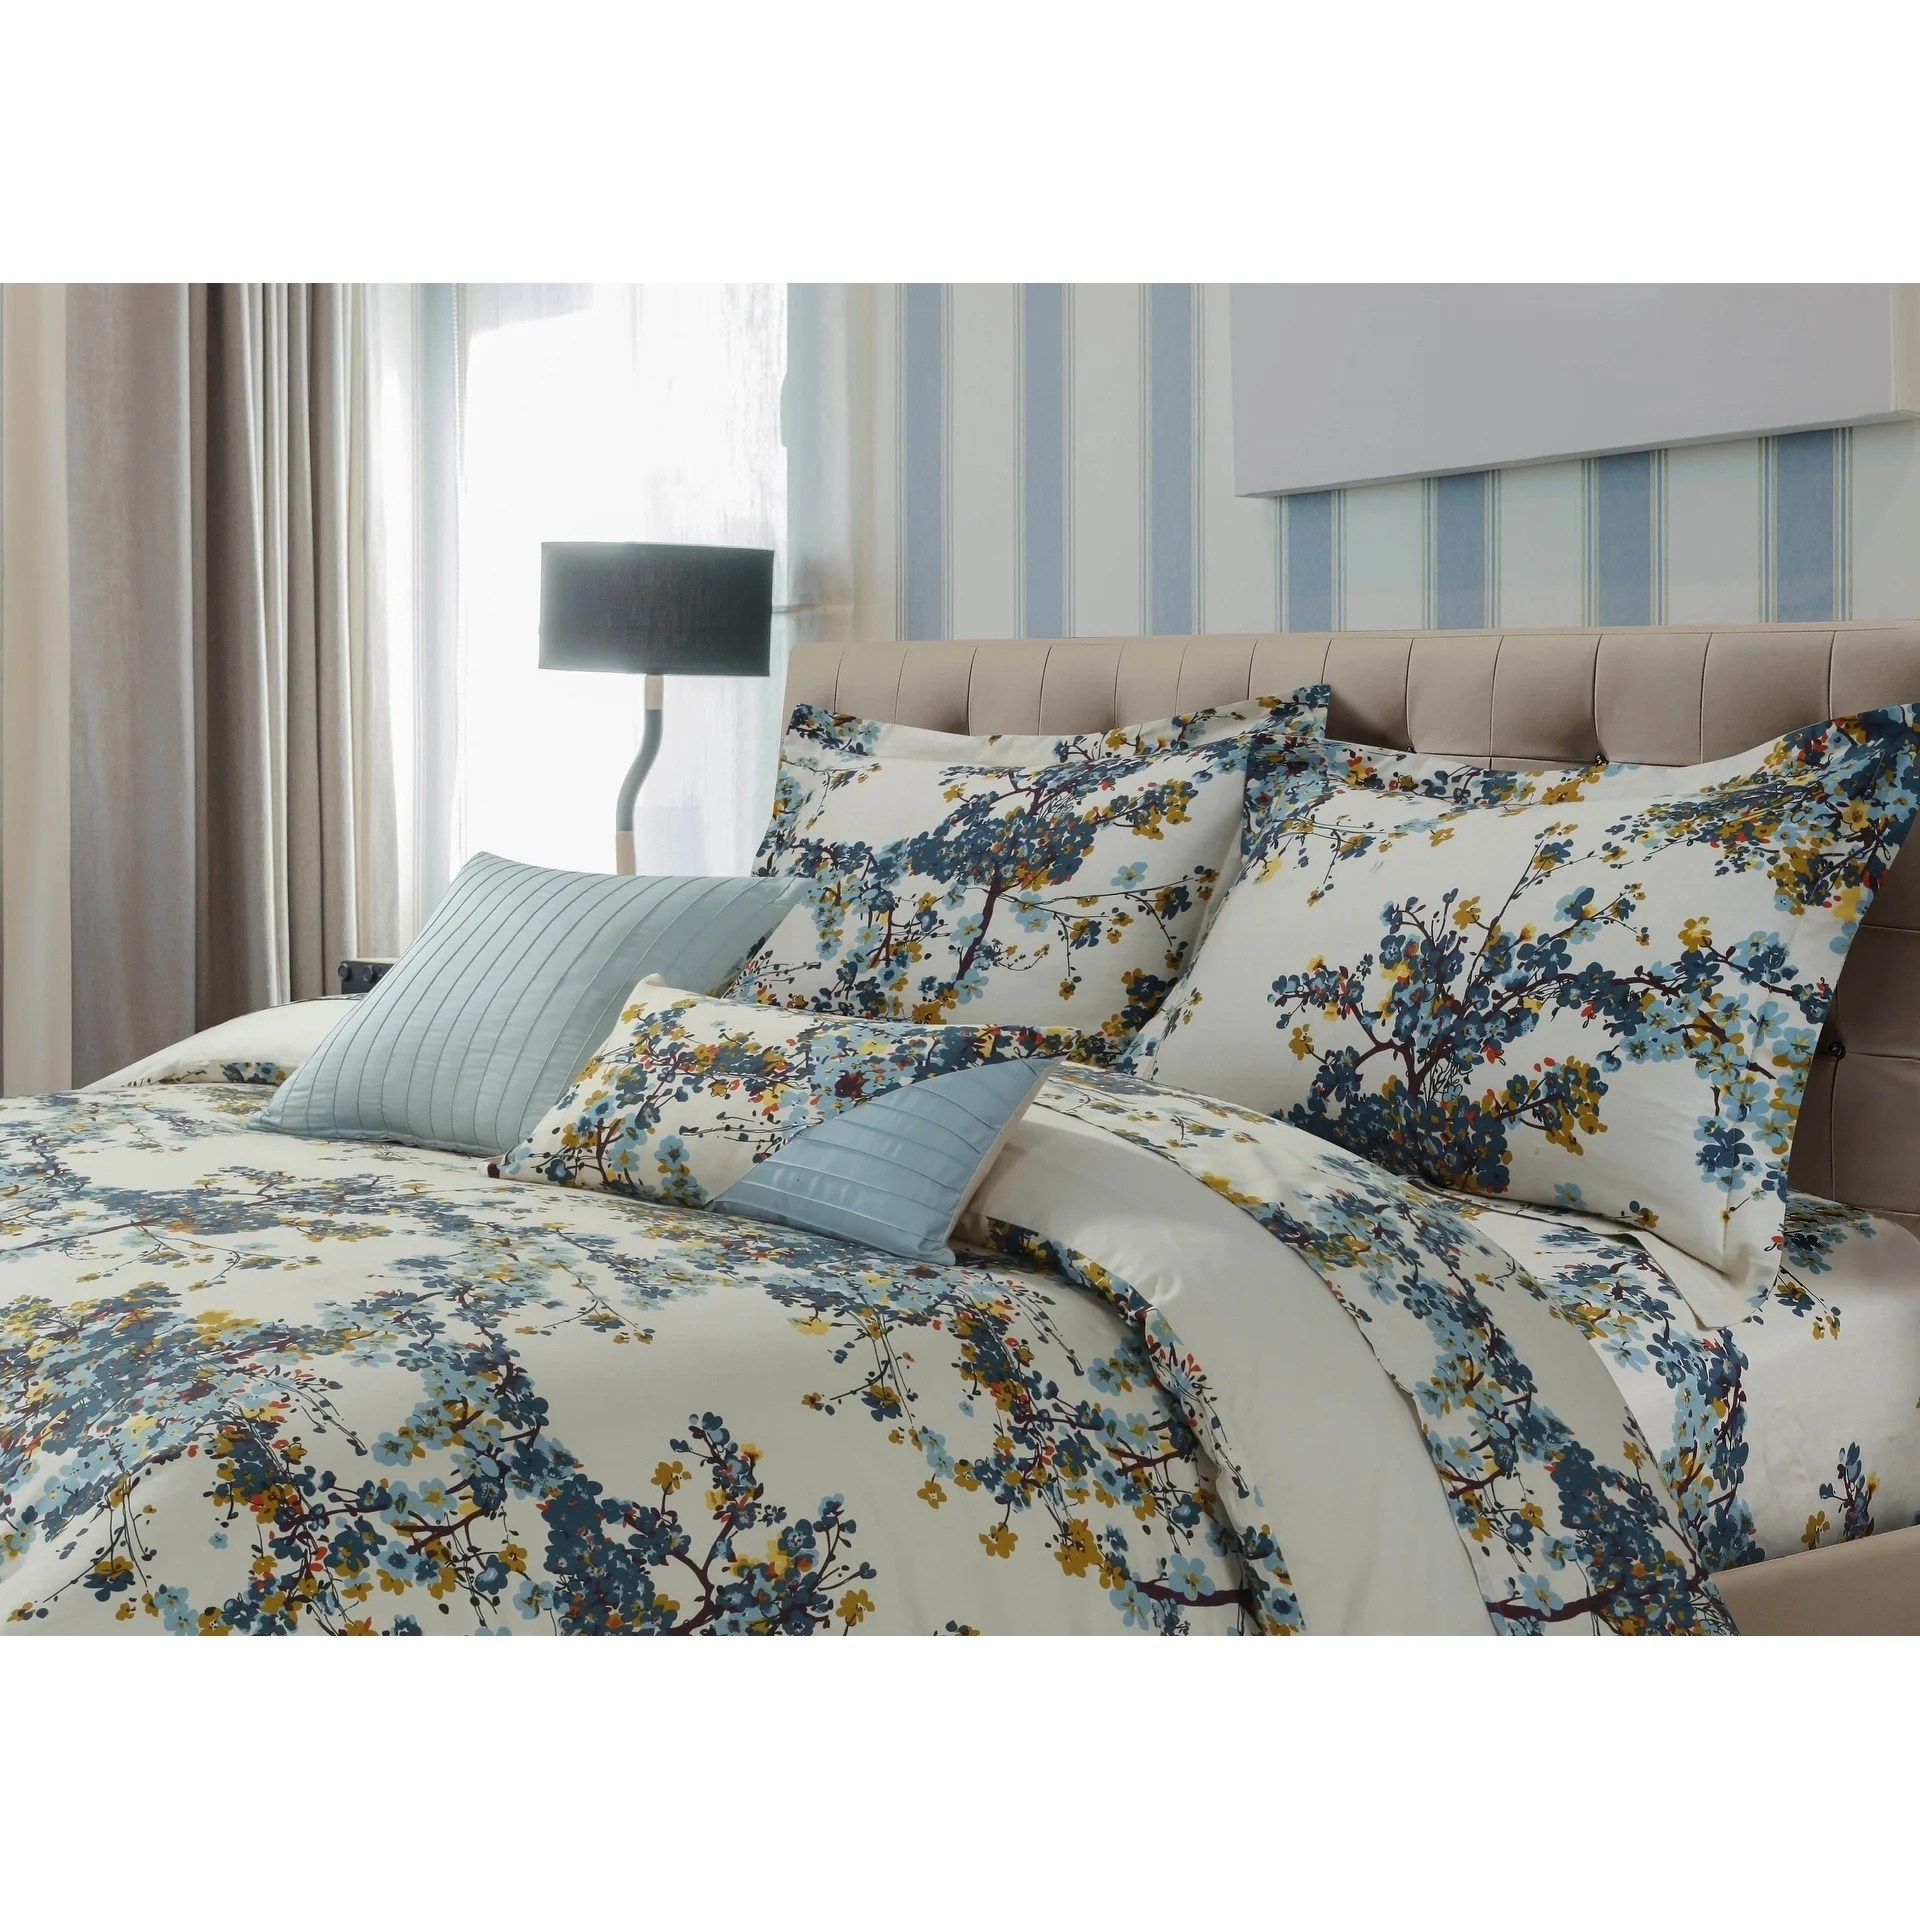 Duvet And Cover Tribeca Living Casablanca 5 Piece Cotton Sateen Floral Oversized Duvet Cover Set